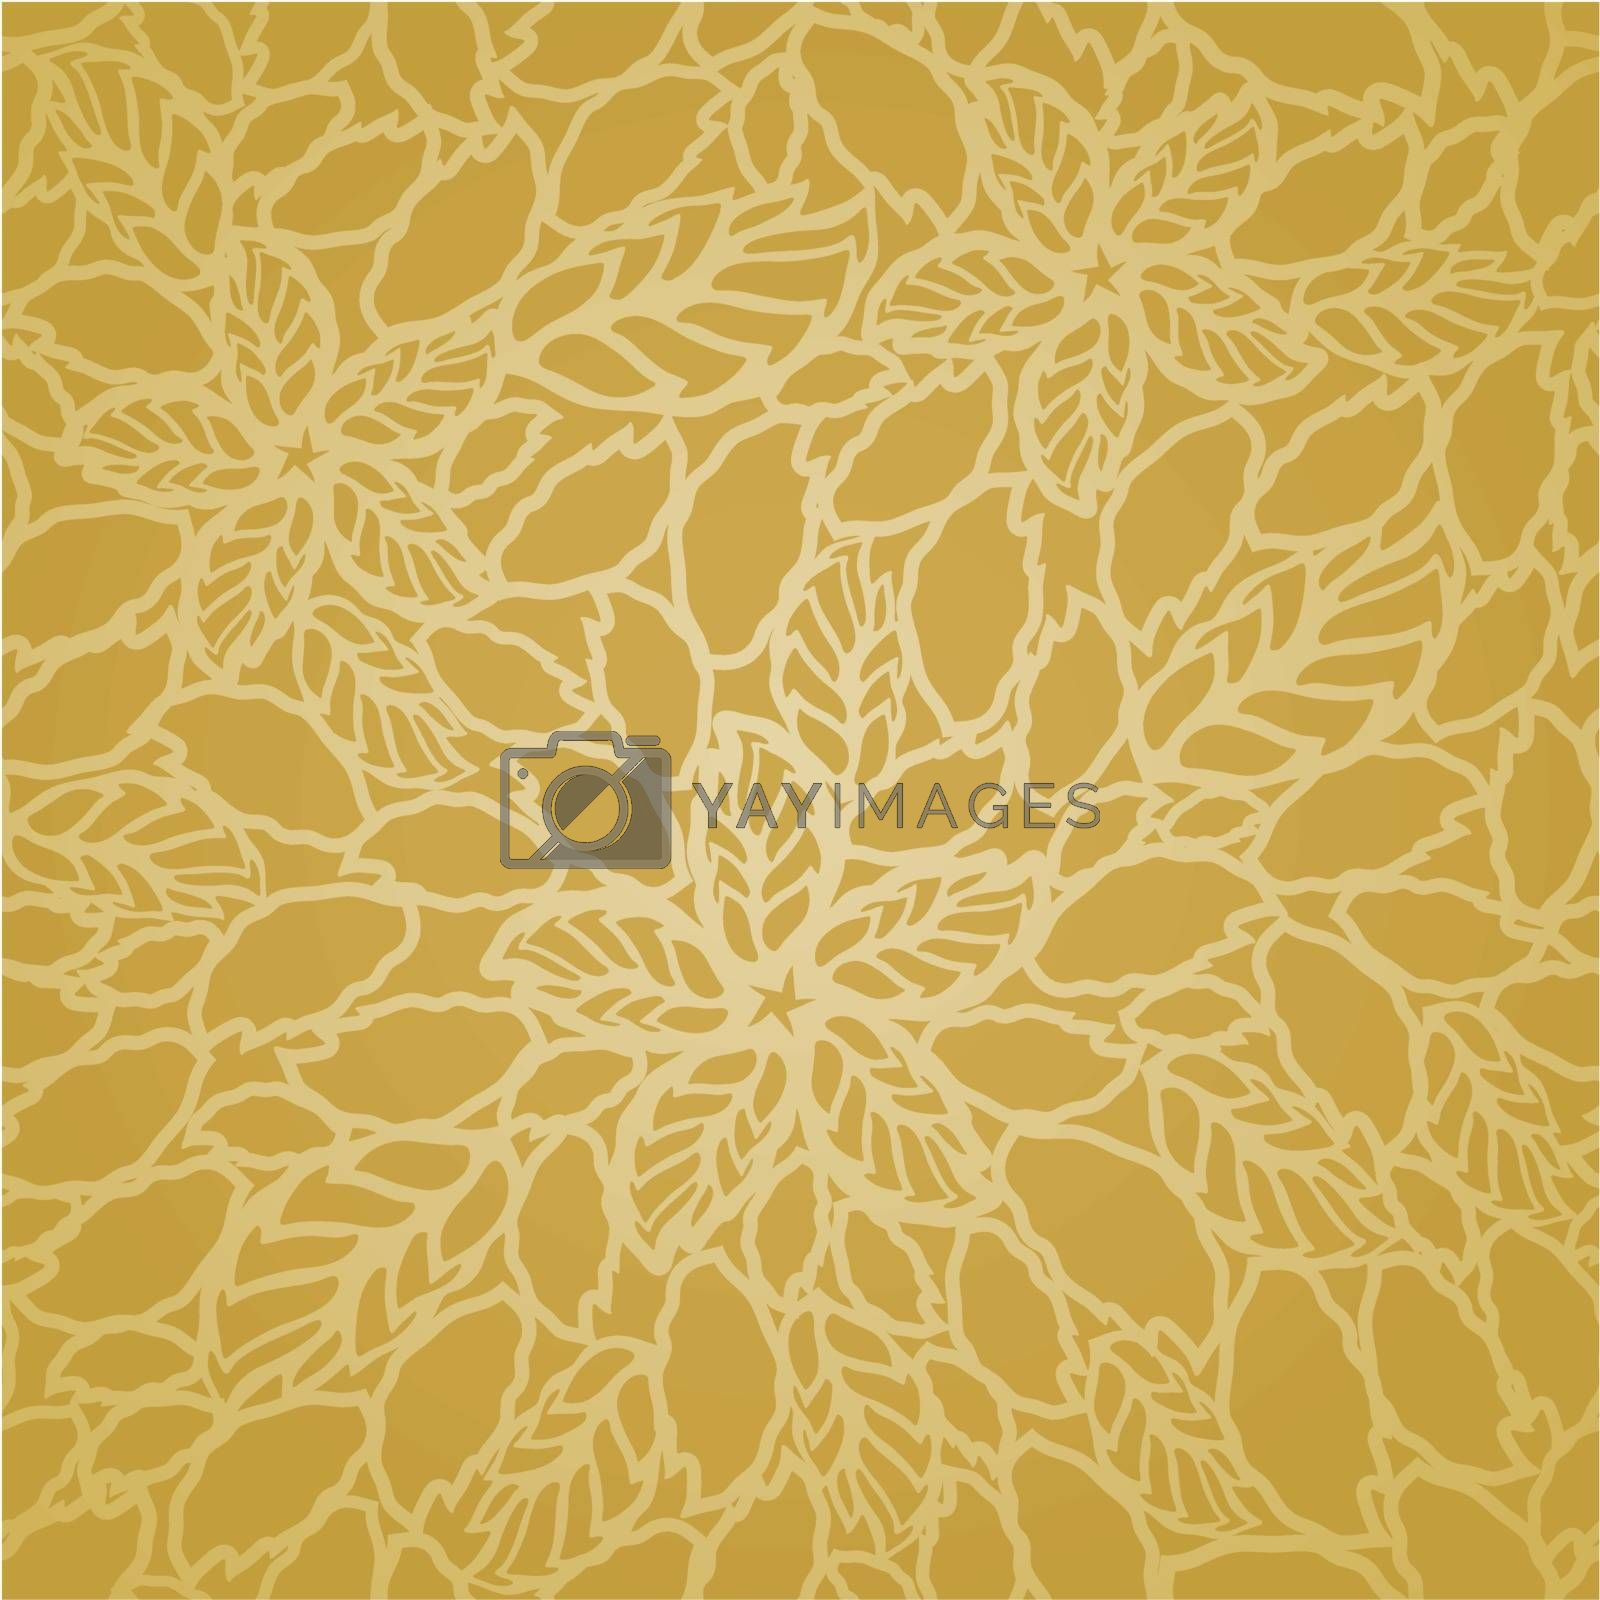 Seamless golden leaves and flowers lace wallpaper pattern. This image is a vector illustration.